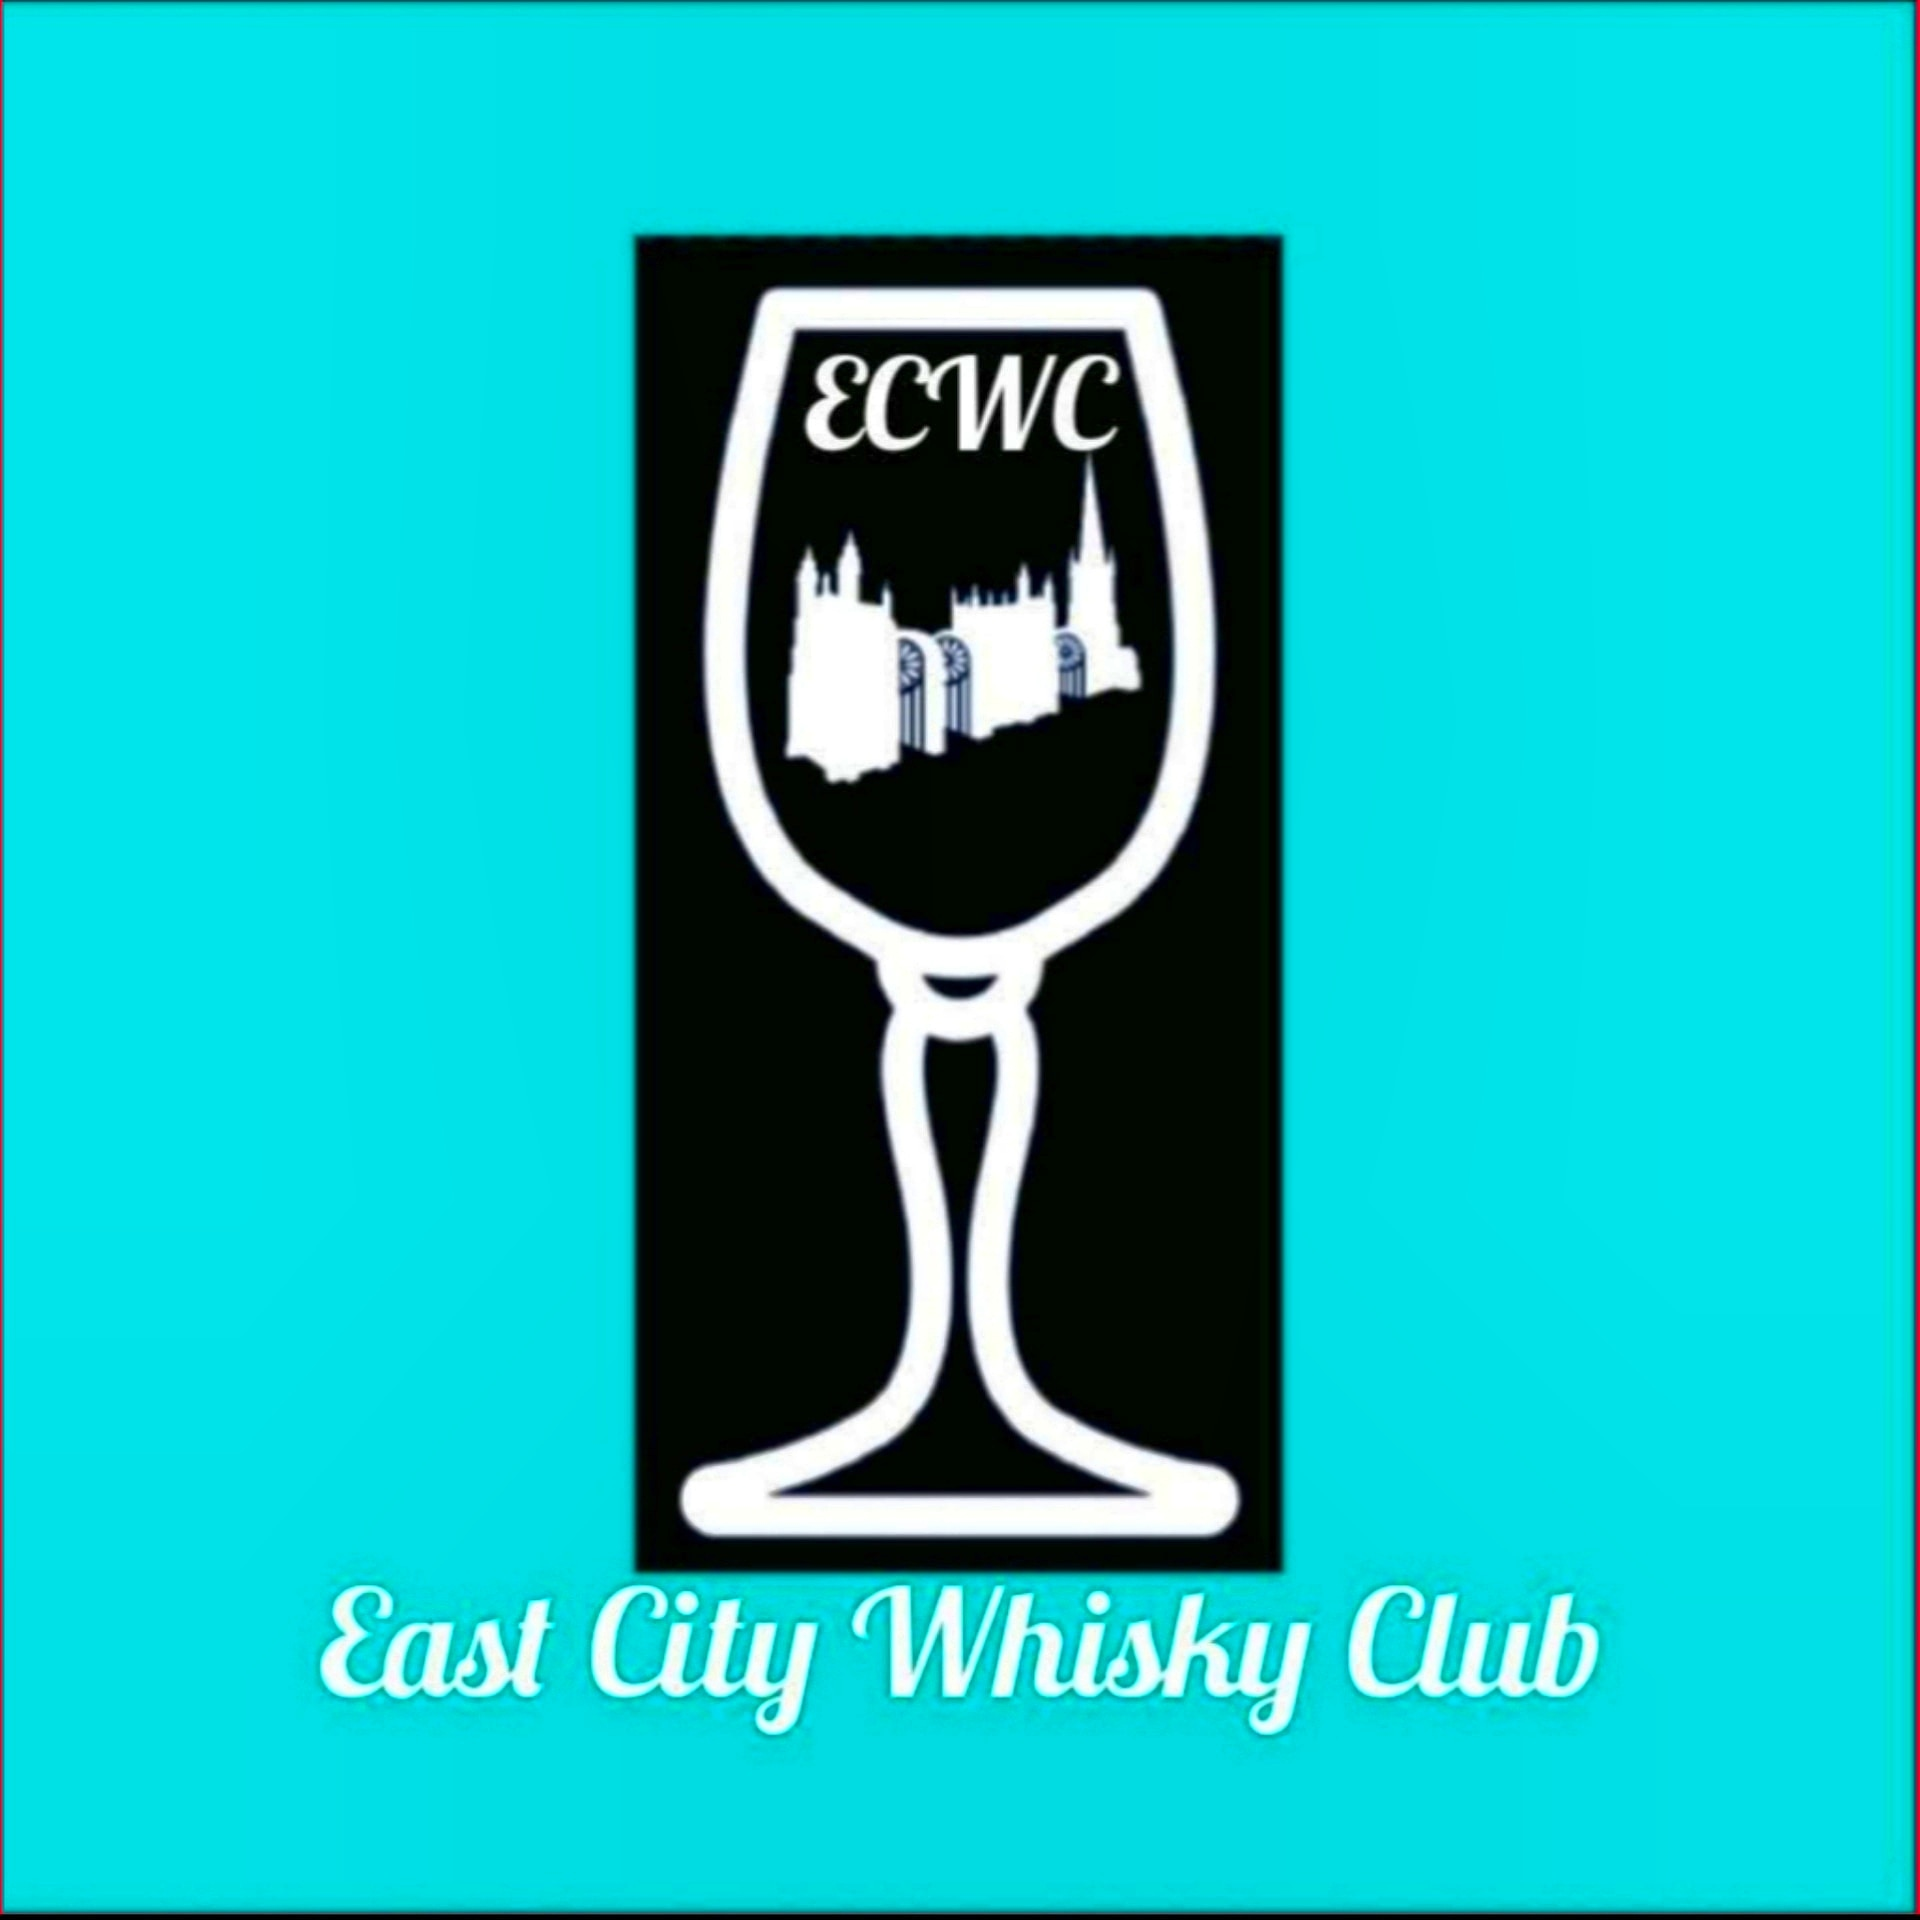 East City Whisky Club